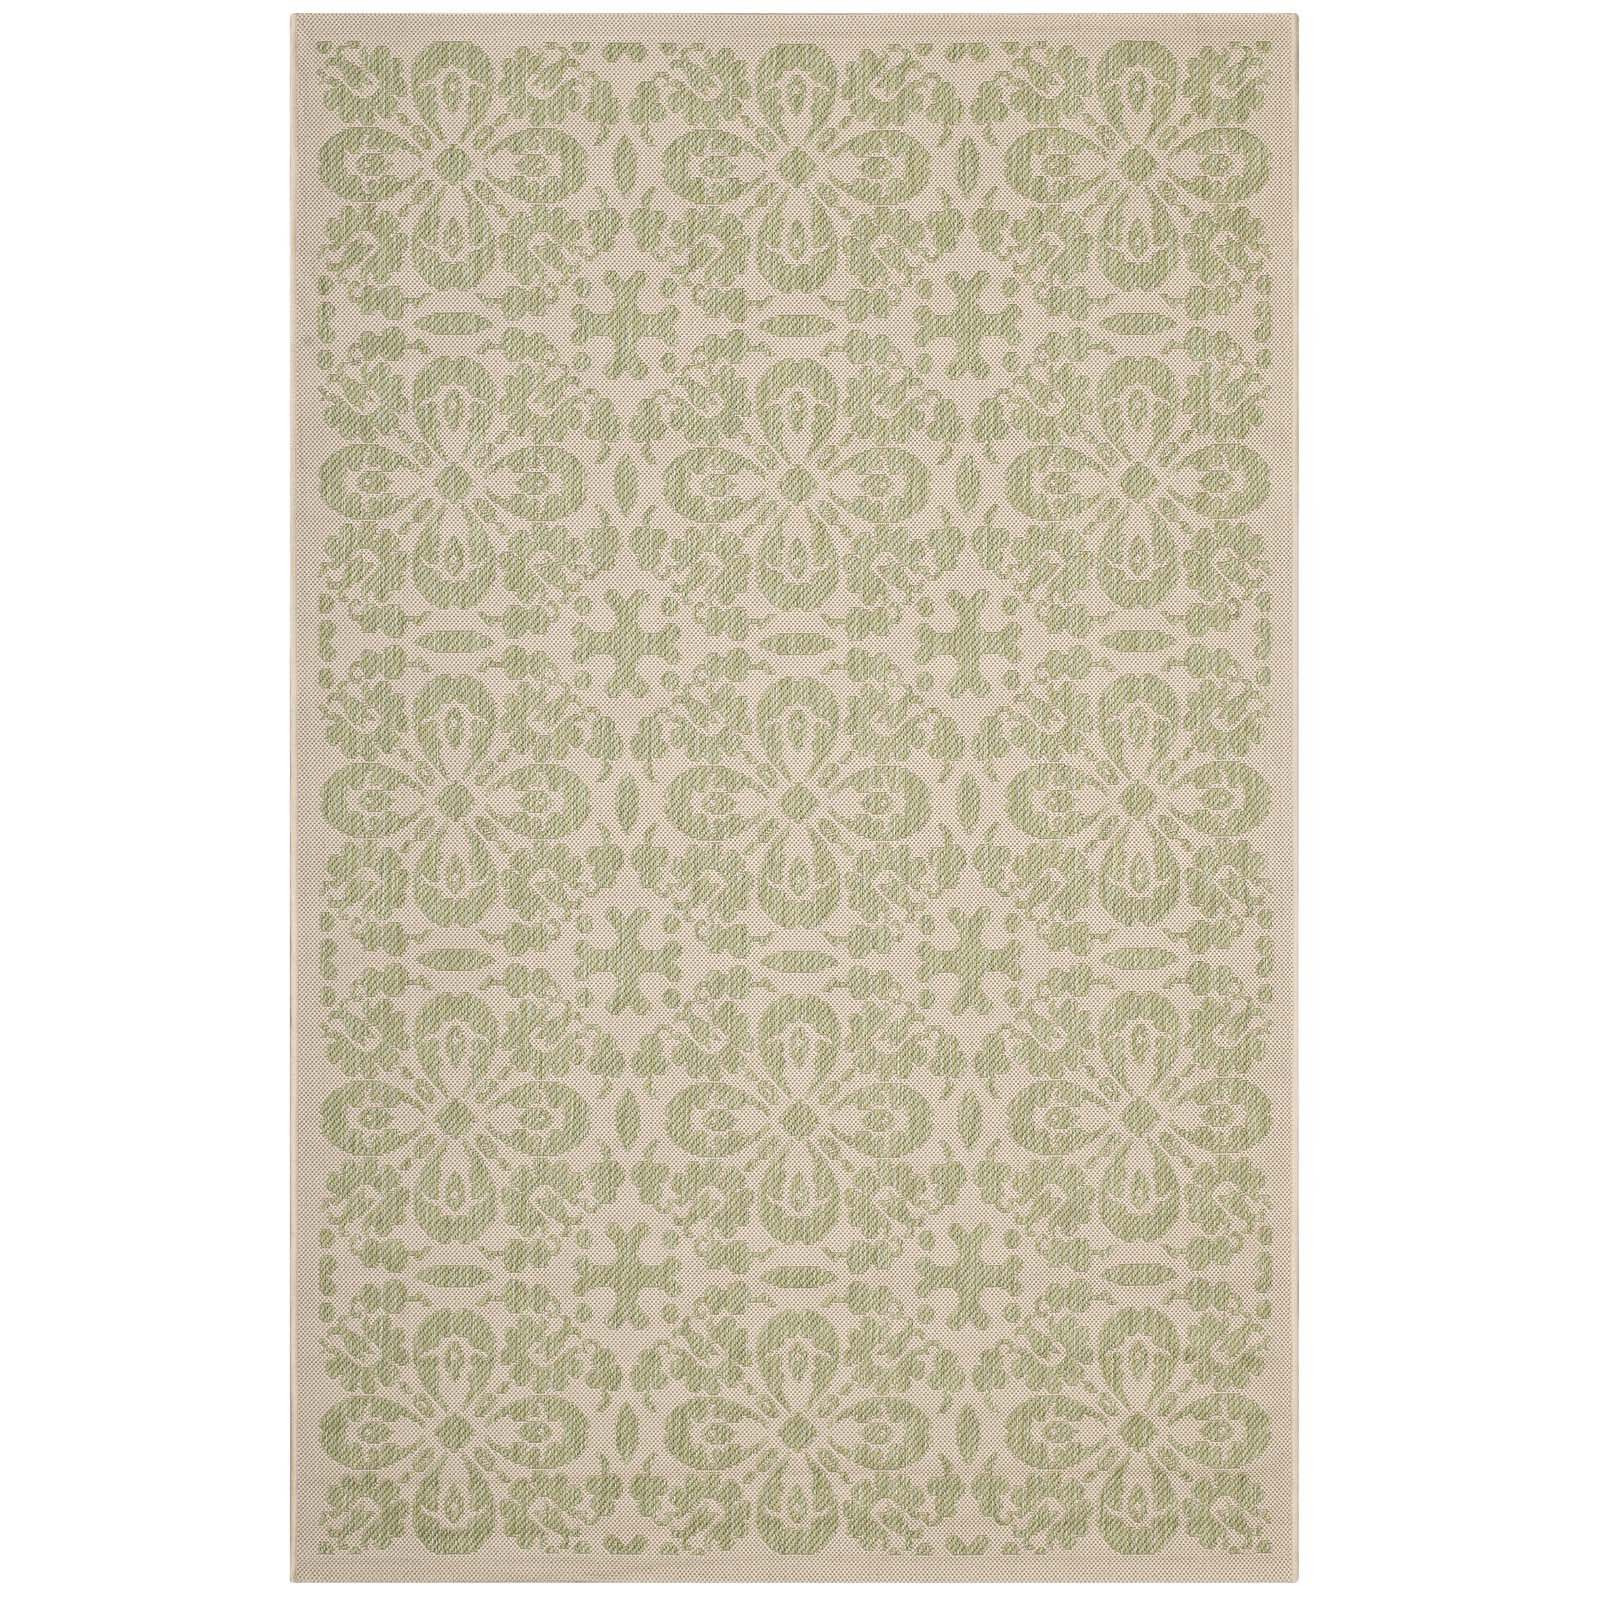 Modway R-1142B-810 Ariana Vintage Floral Trellis 8' x 10' Indoor and Outdoor, 8x10, Light Green and Beige by Modway